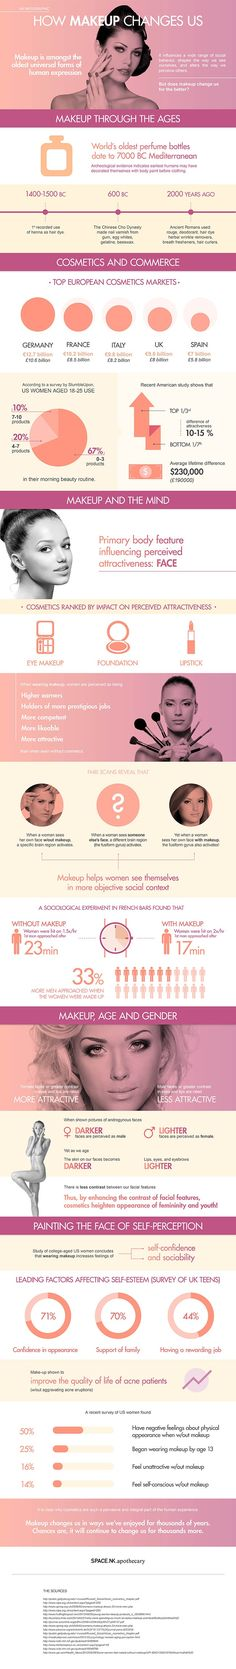 Check out these interesting statistics regarding how makeup changes us.